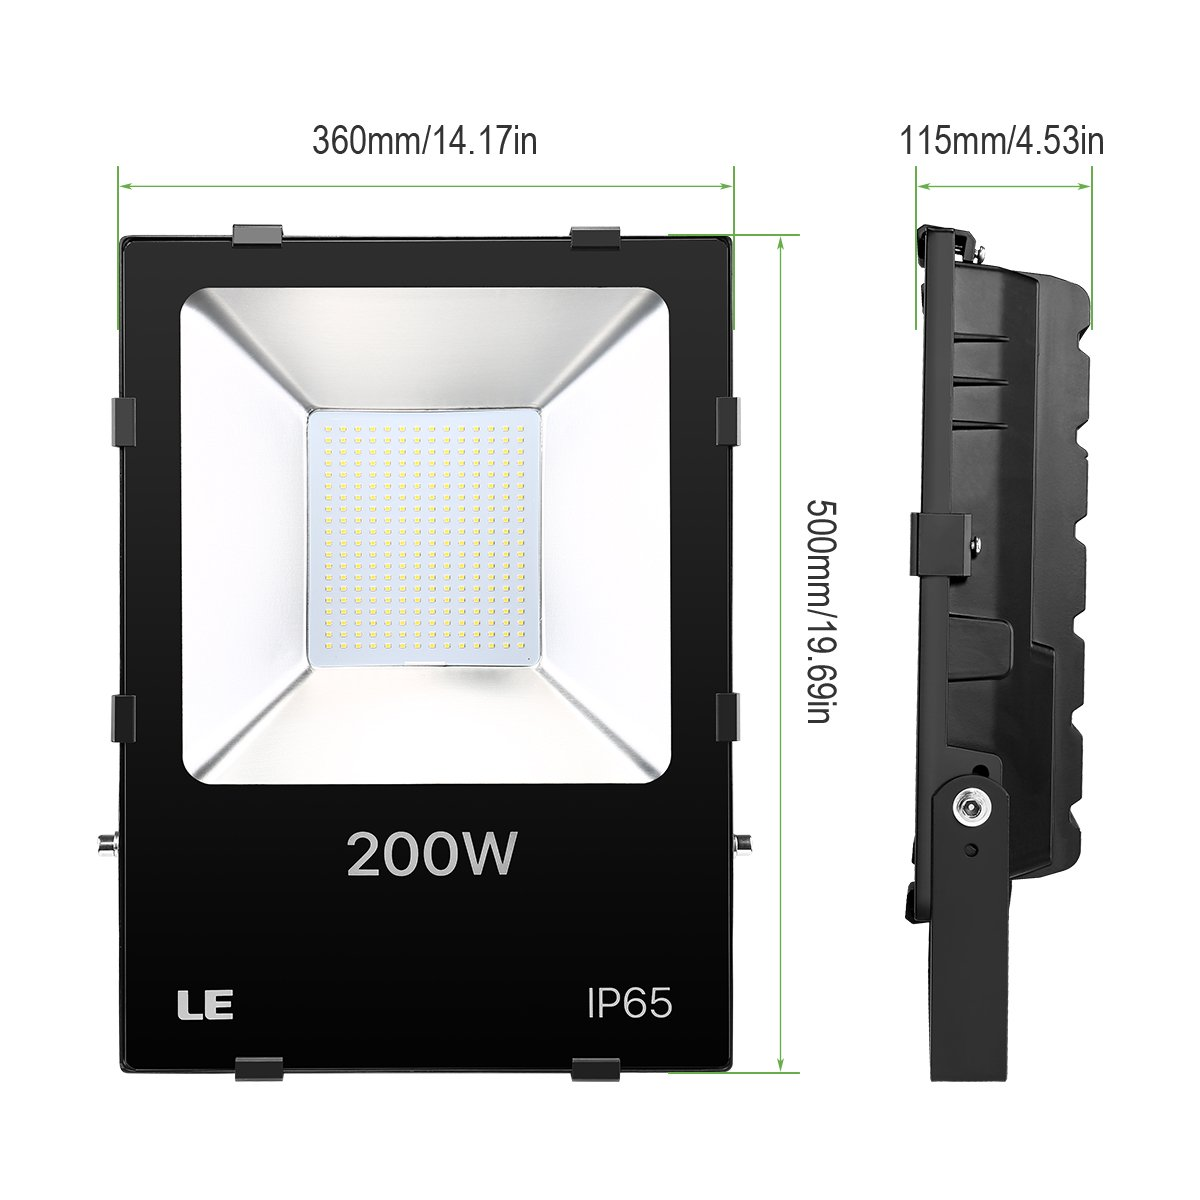 LE 200W Super Bright Outdoor LED Flood Lights, Daylight White, 5000K, 600W HPSL Equivalent Security Lights, Floodlight (ETL Listed) by Lighting EVER (Image #5)